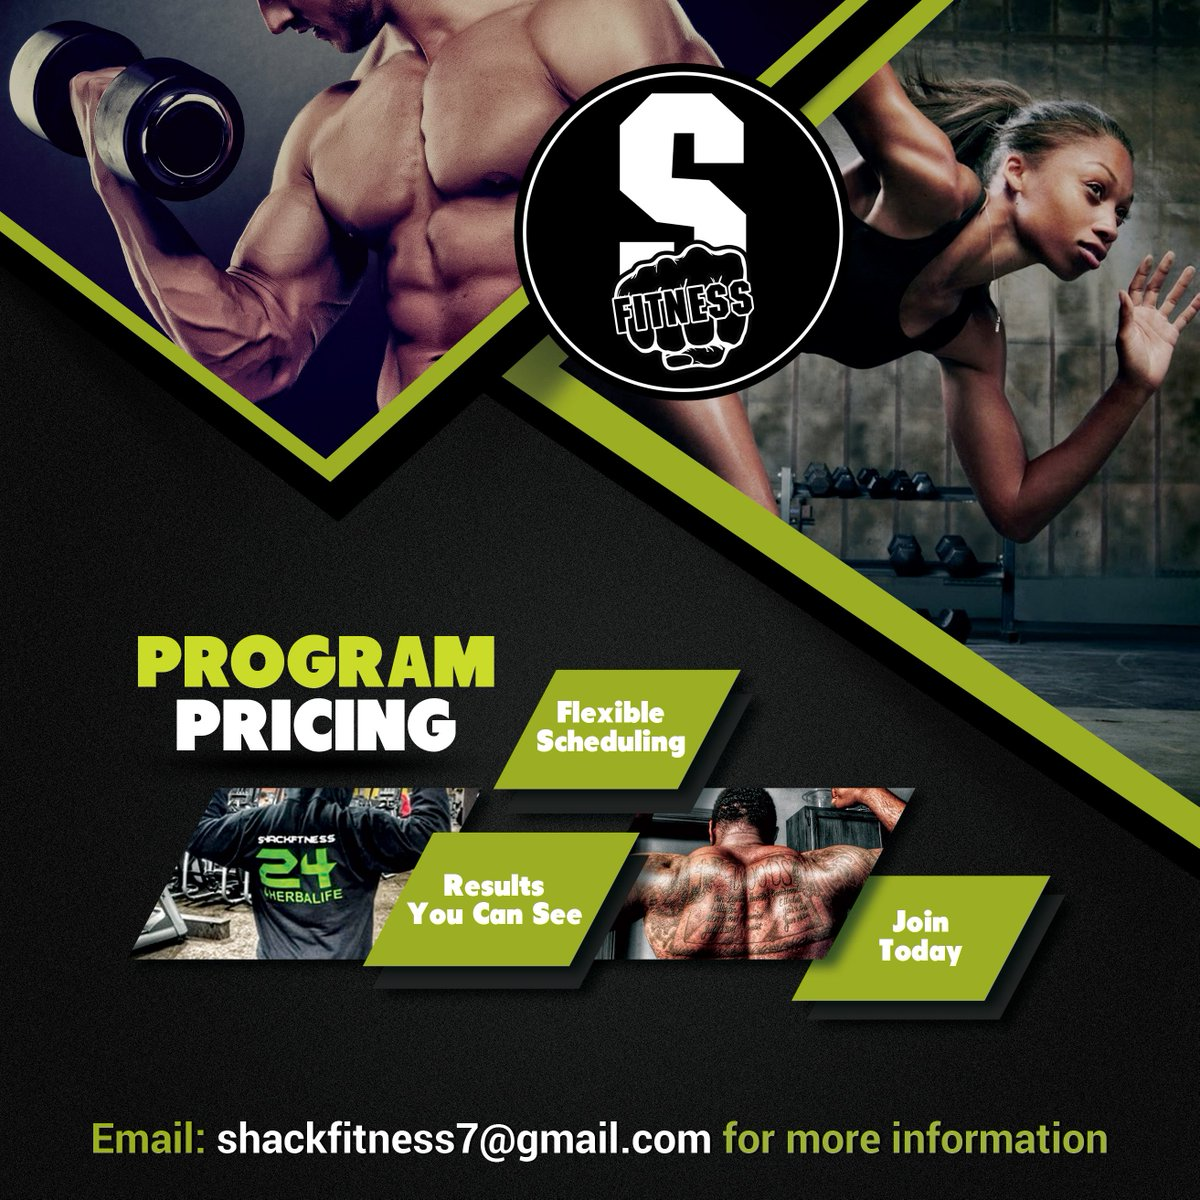 Flyer Design: #ShackFitness ... Contact @J_Shack for more information https://t.co/h8MaDzkecl